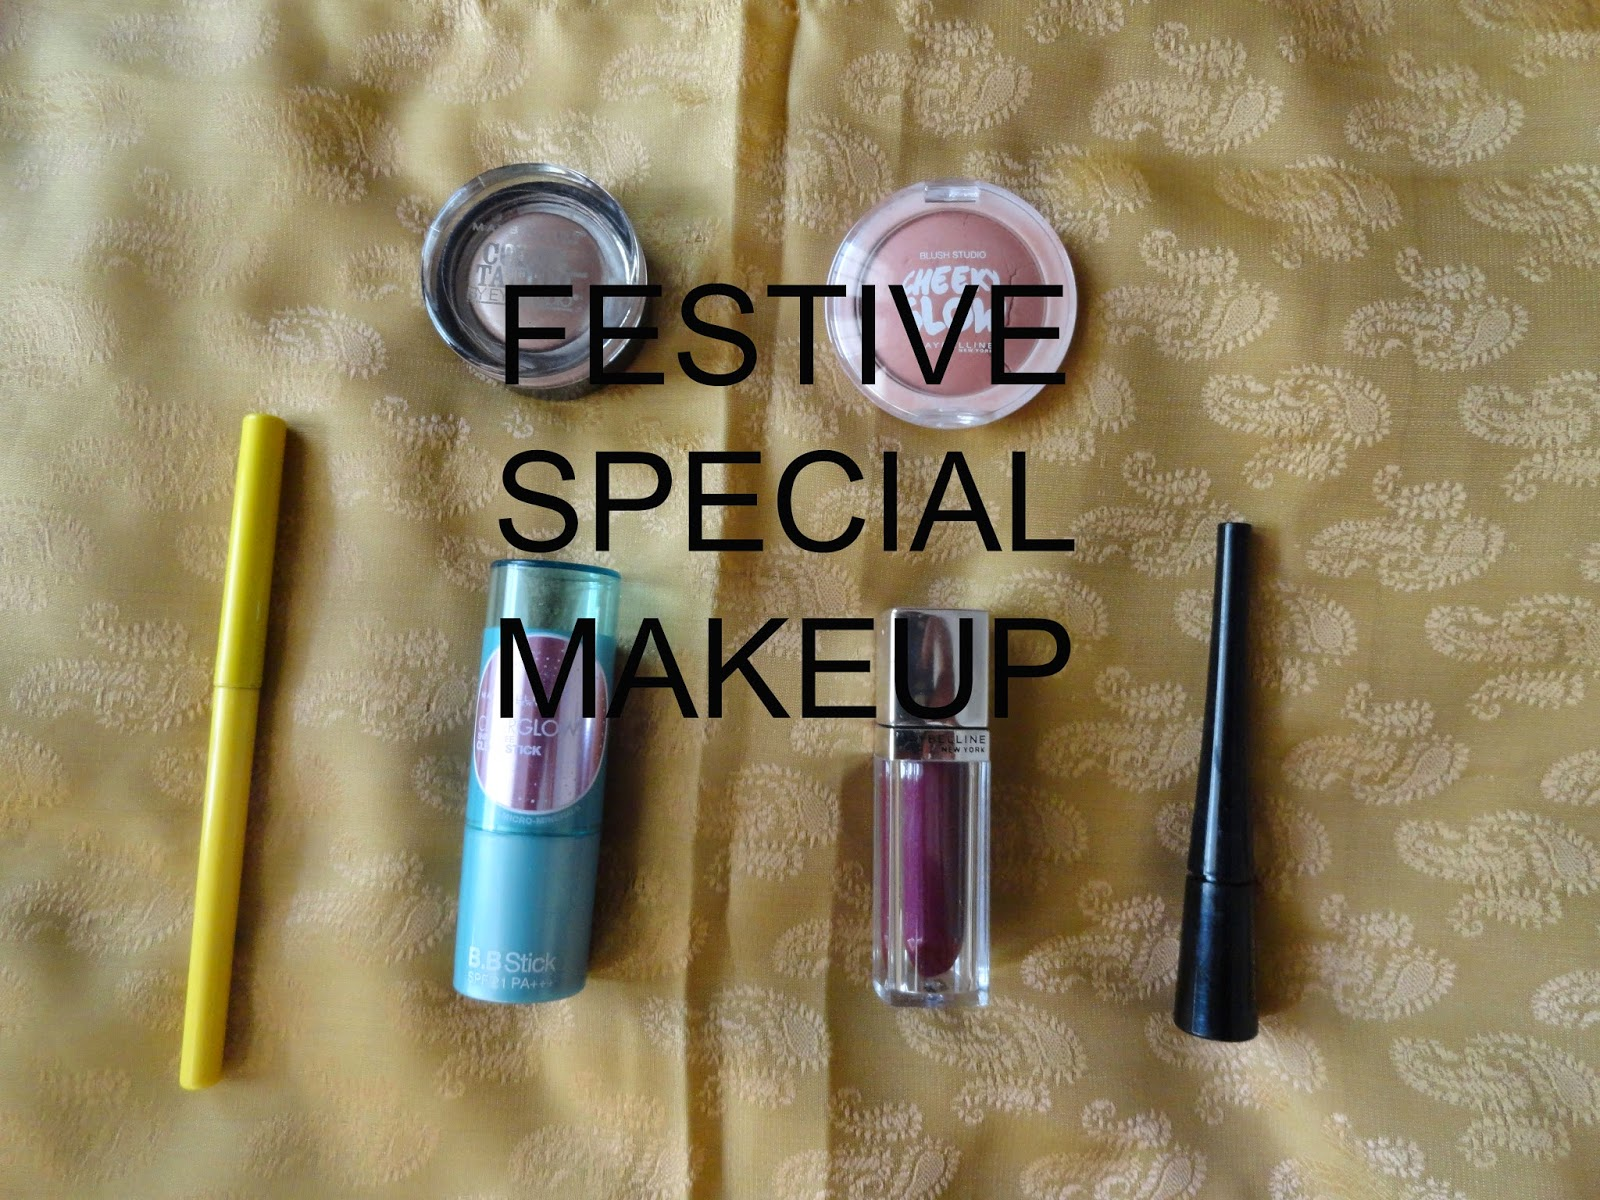 Maybelline products for this festive season image